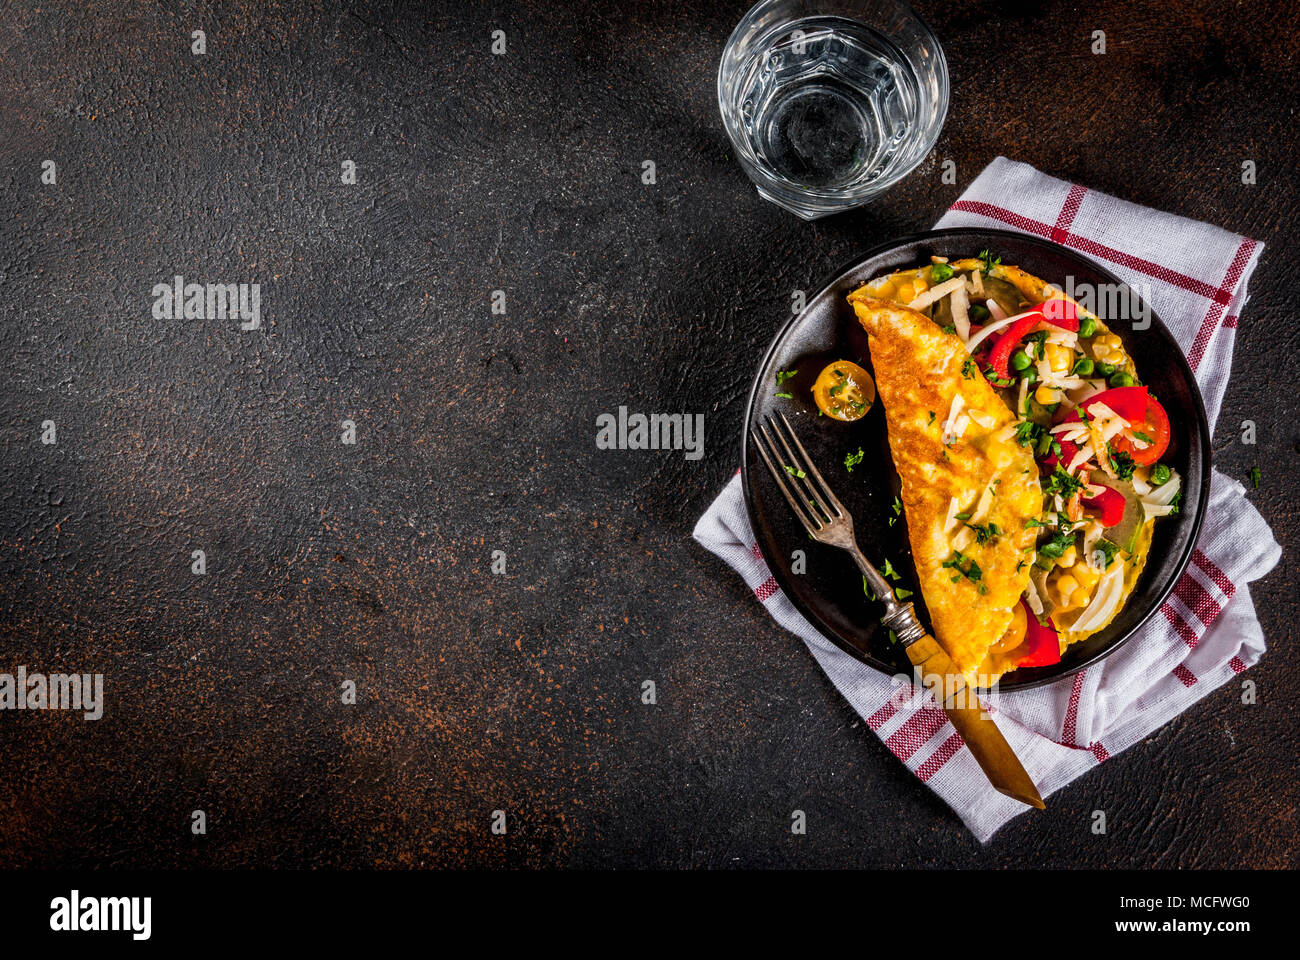 Healthy breakfast food, Stuffed egg omelette with vegetable, dark concrete background copy space top view - Stock Image